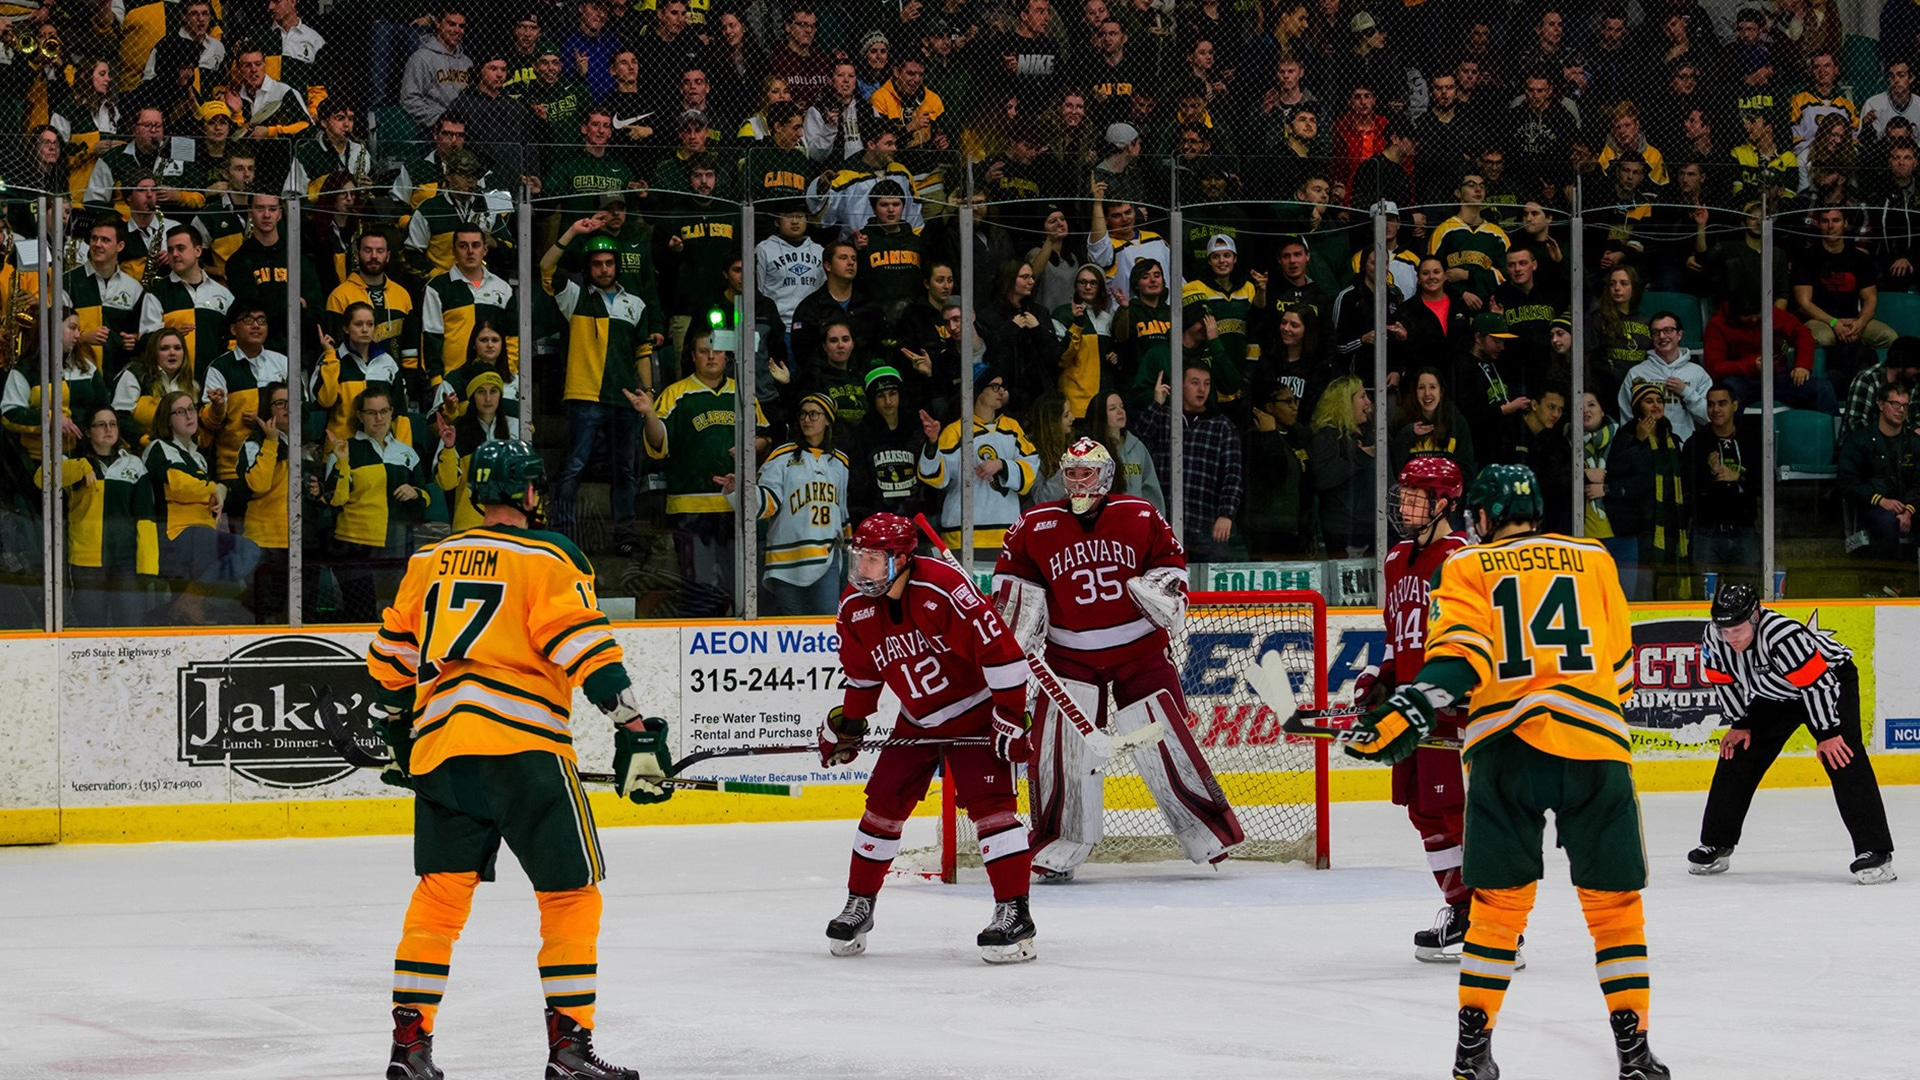 Crowd watching a college hockey game in the Cheel Arena at Clarkson University